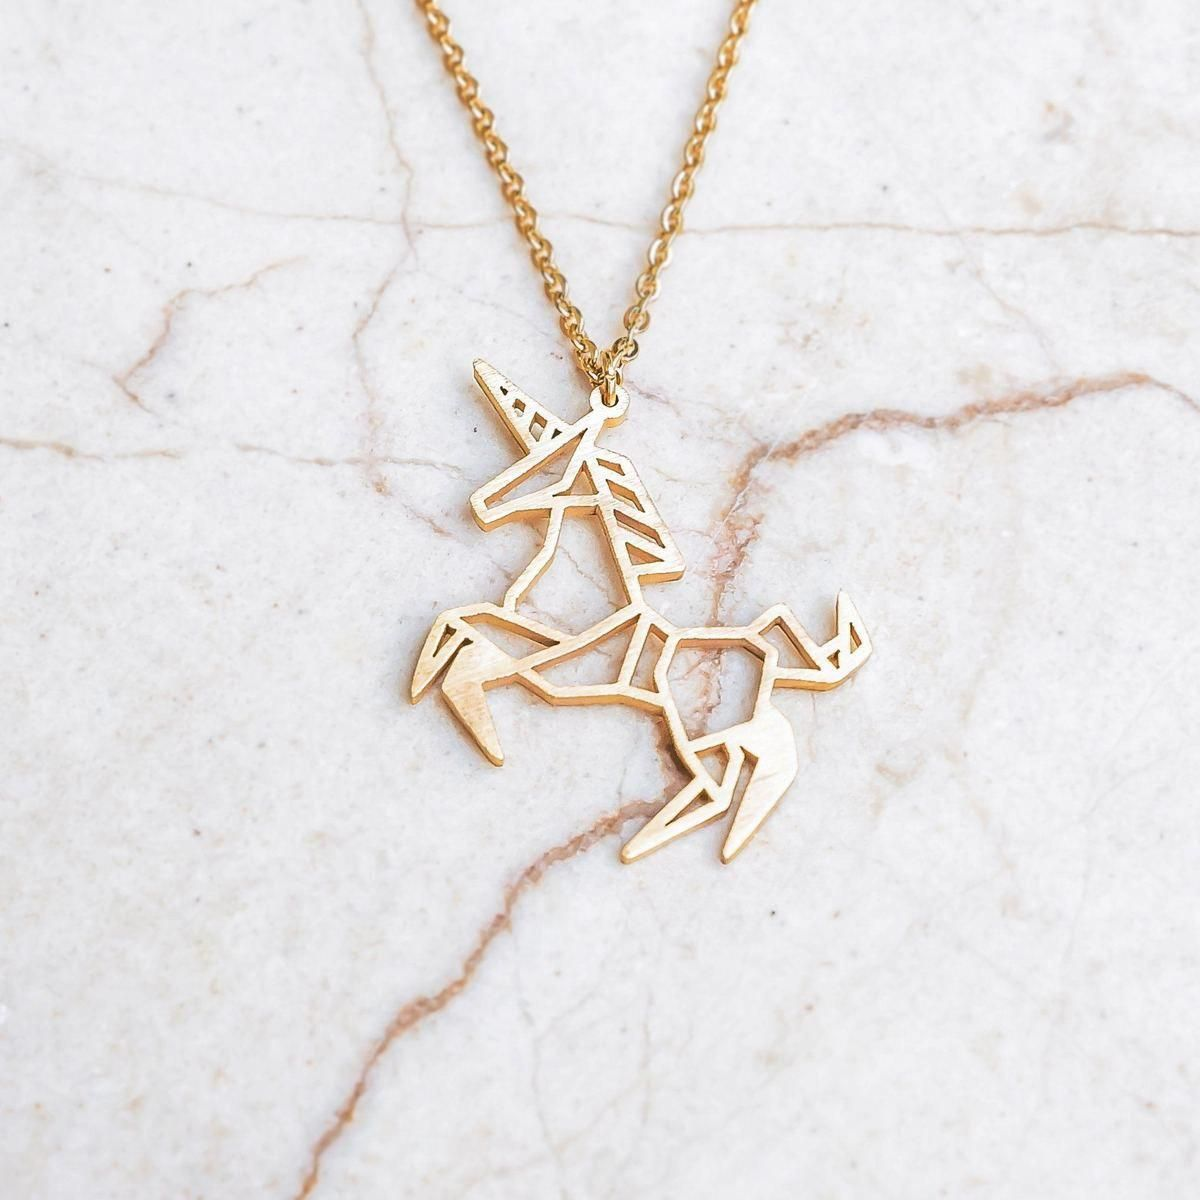 14k solid gold coin necklace